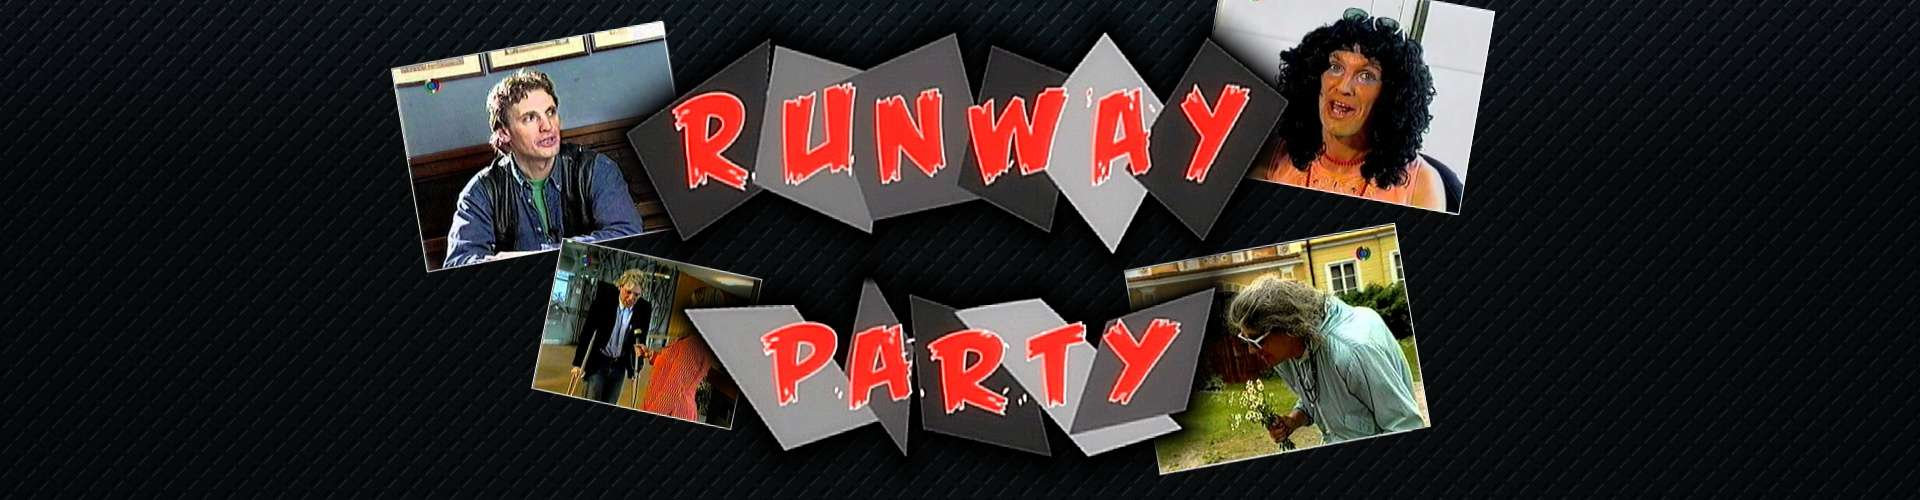 victory-show-banner-runway-party-1920x50